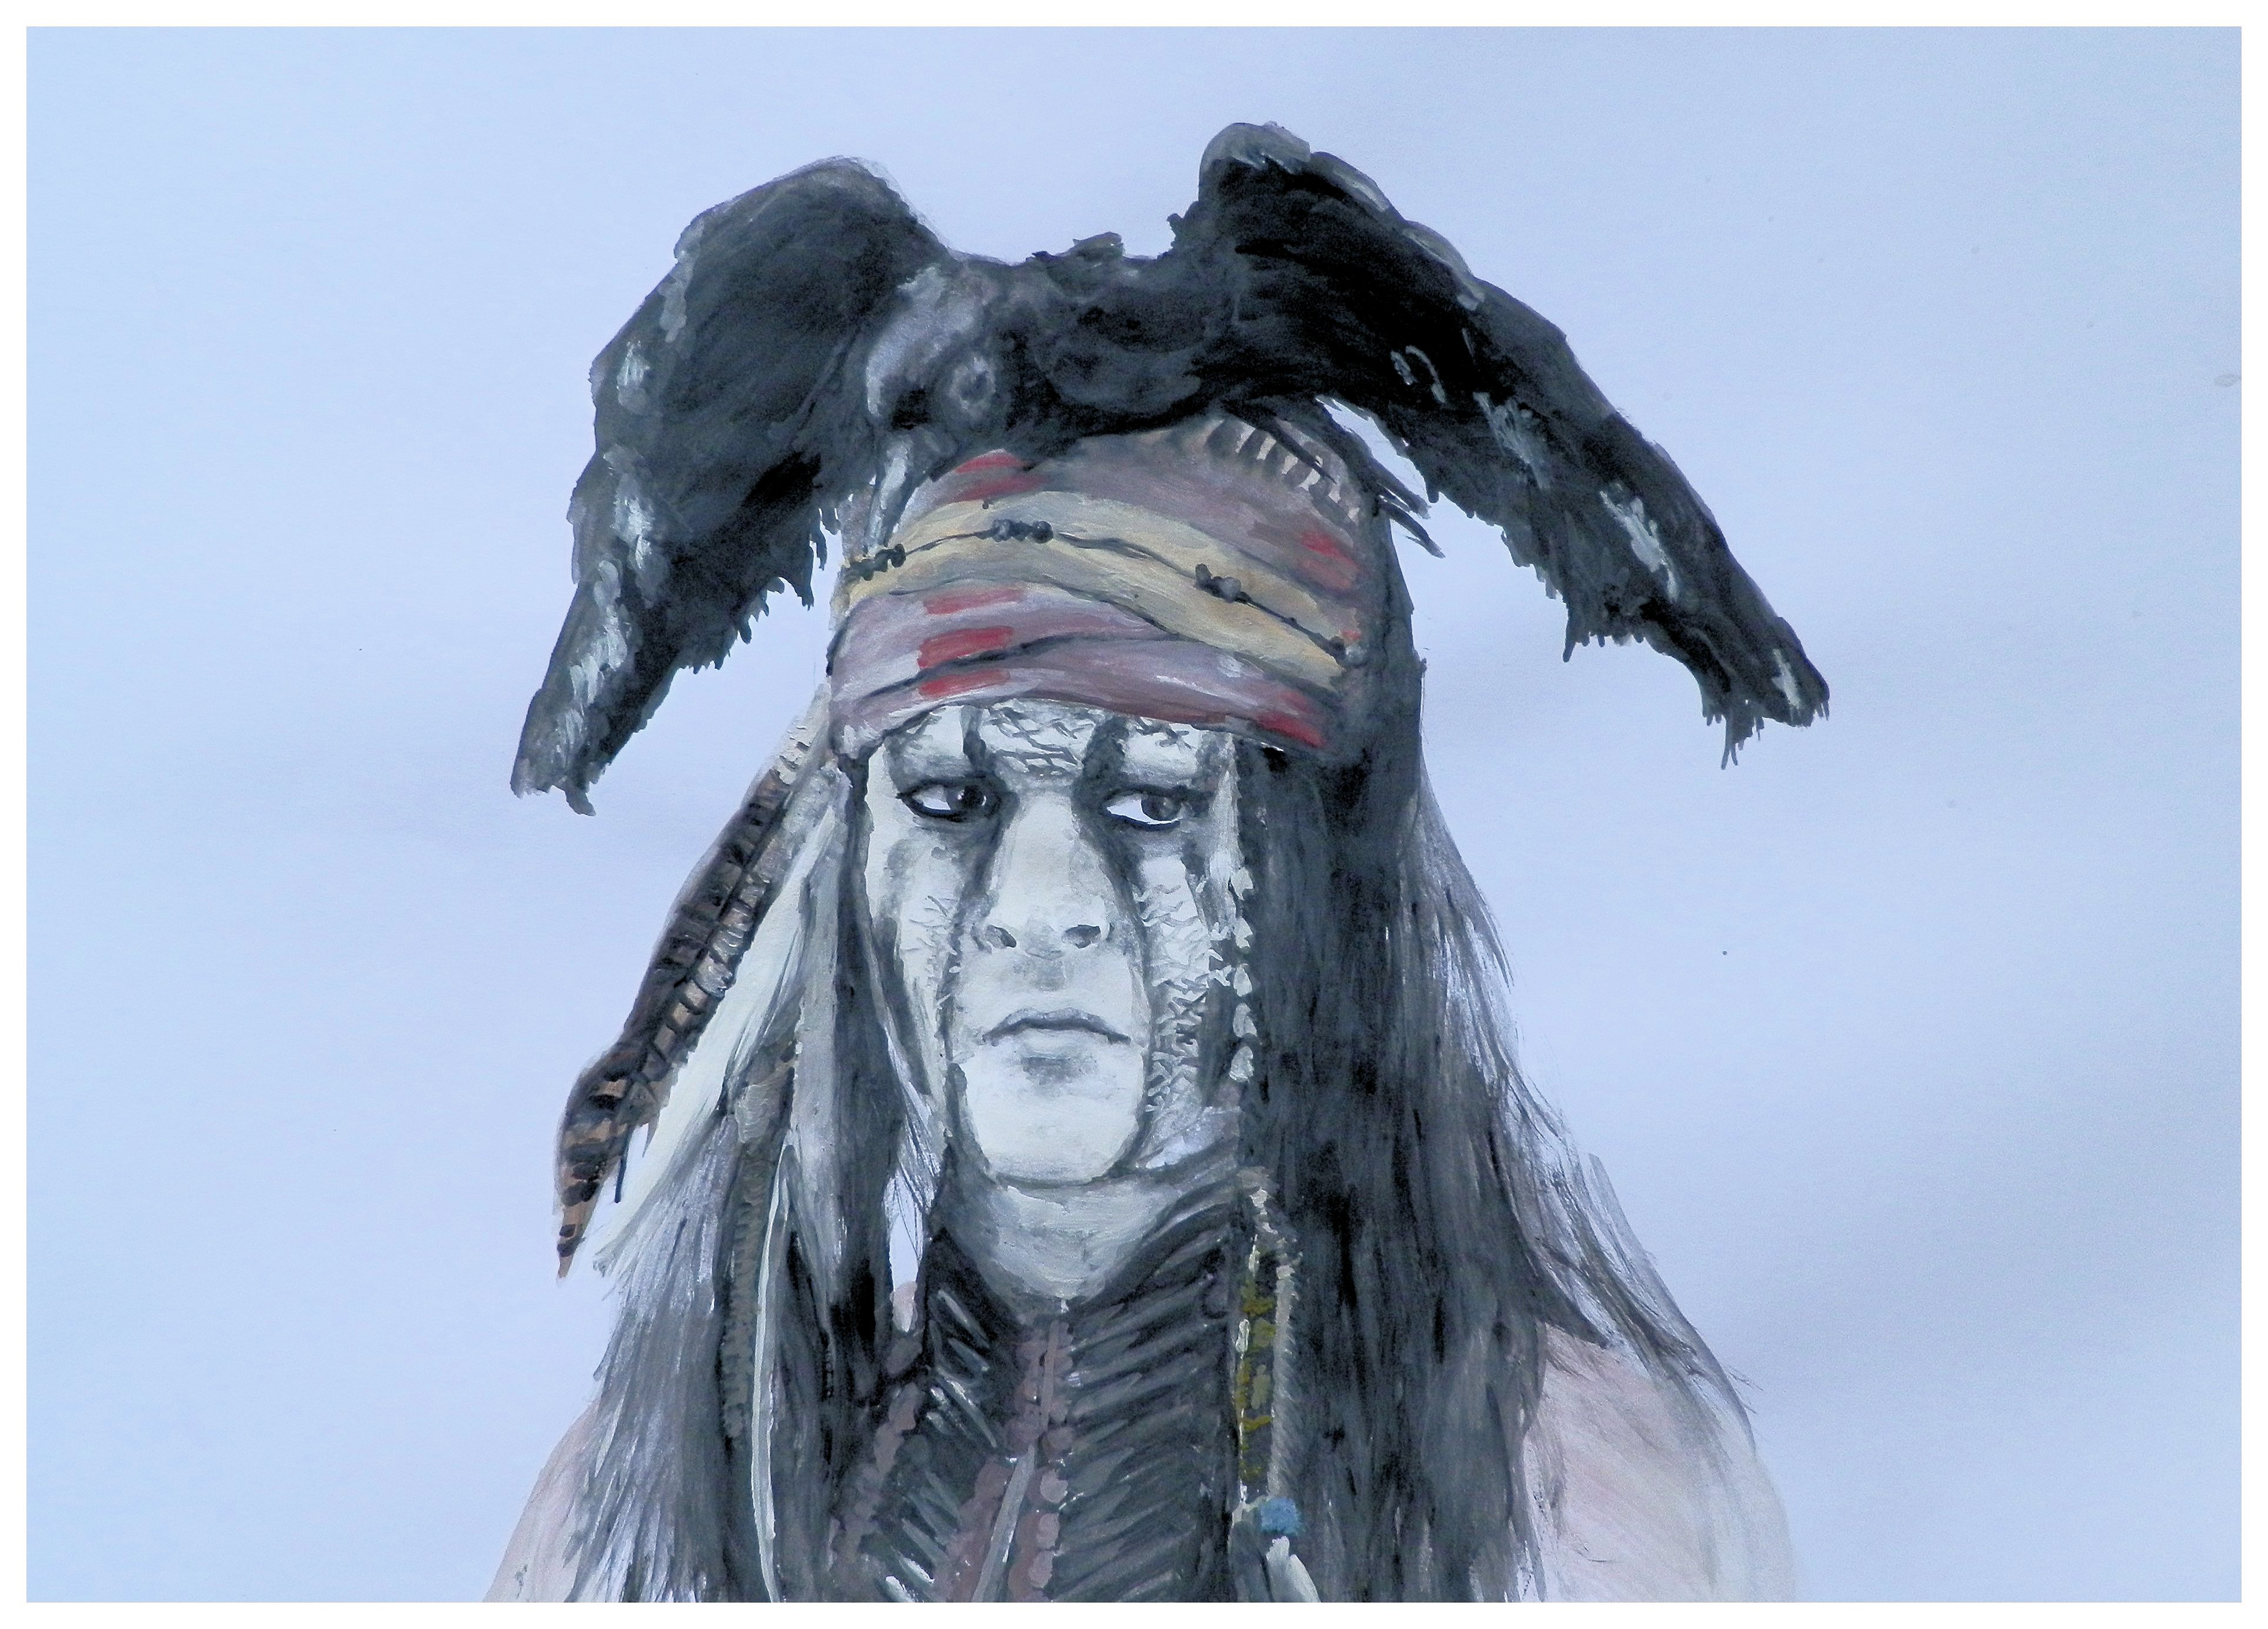 Johnny Depp - Tonto by Bubuka812